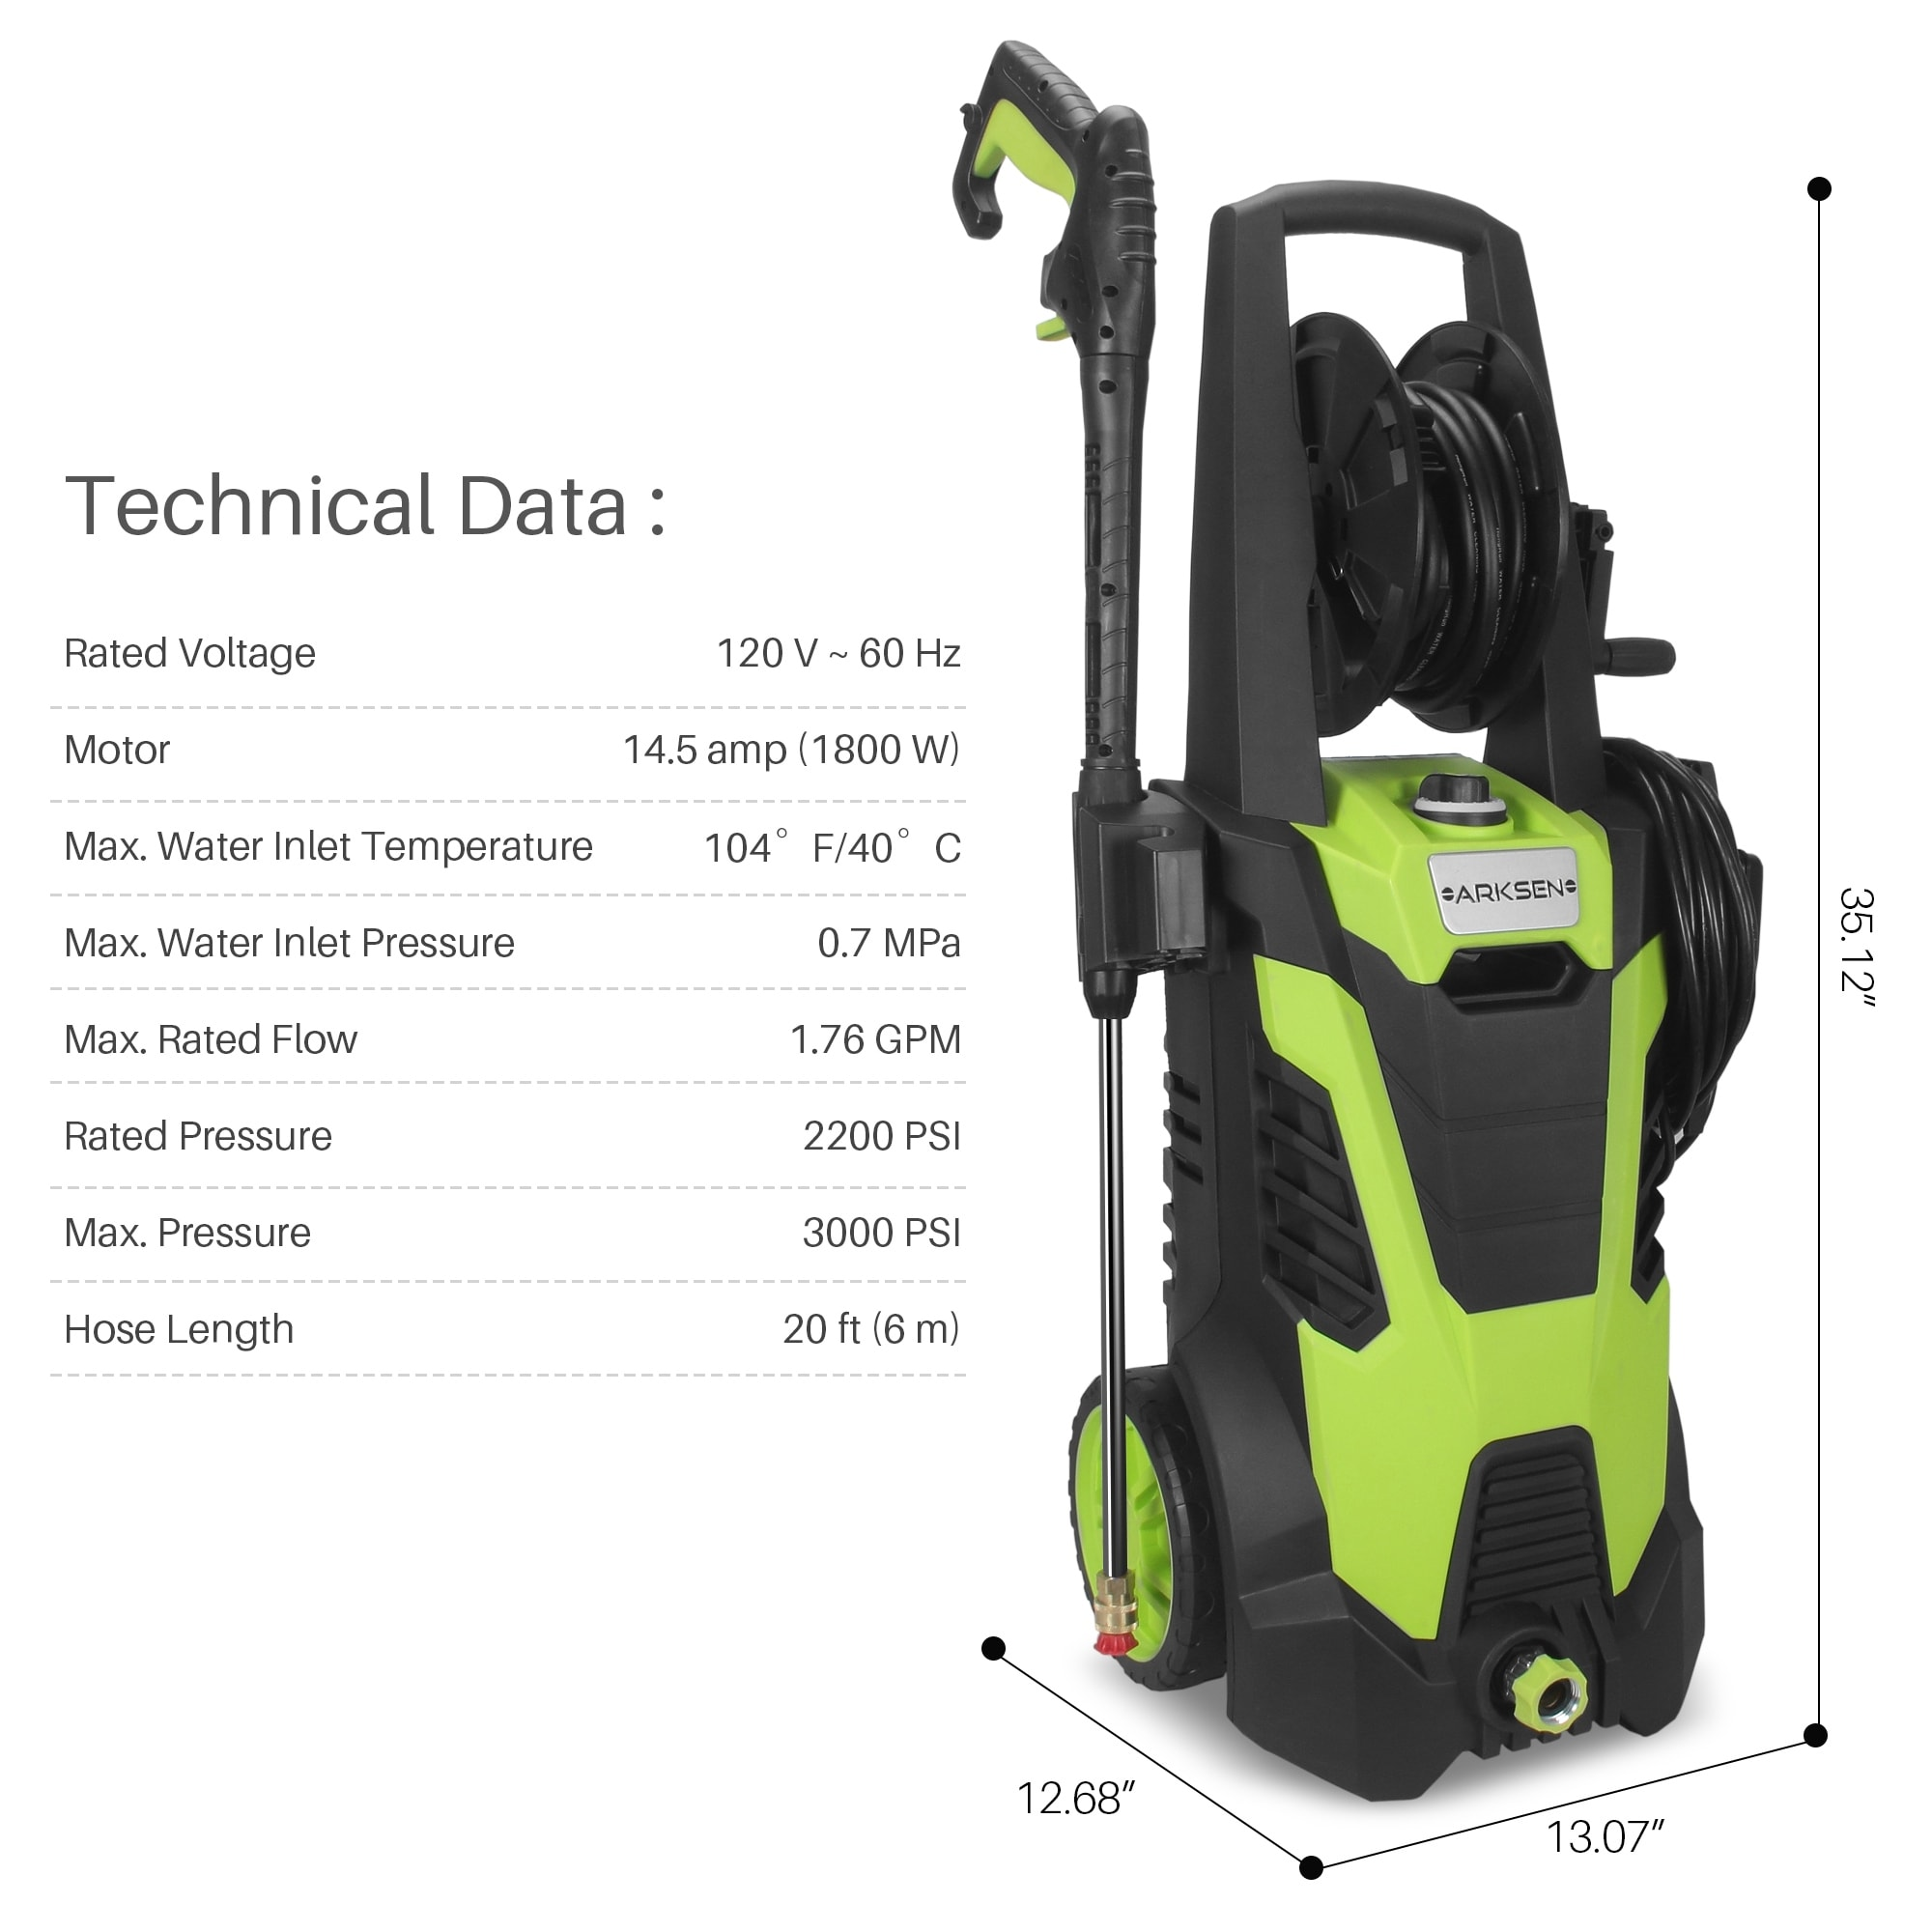 85e6985041549 Arksen 3000 PSI 1.7 GPM 14.5 AMP Electric Pressure Washer with (5) Nozzle  Adapter with Hose Reel, Green